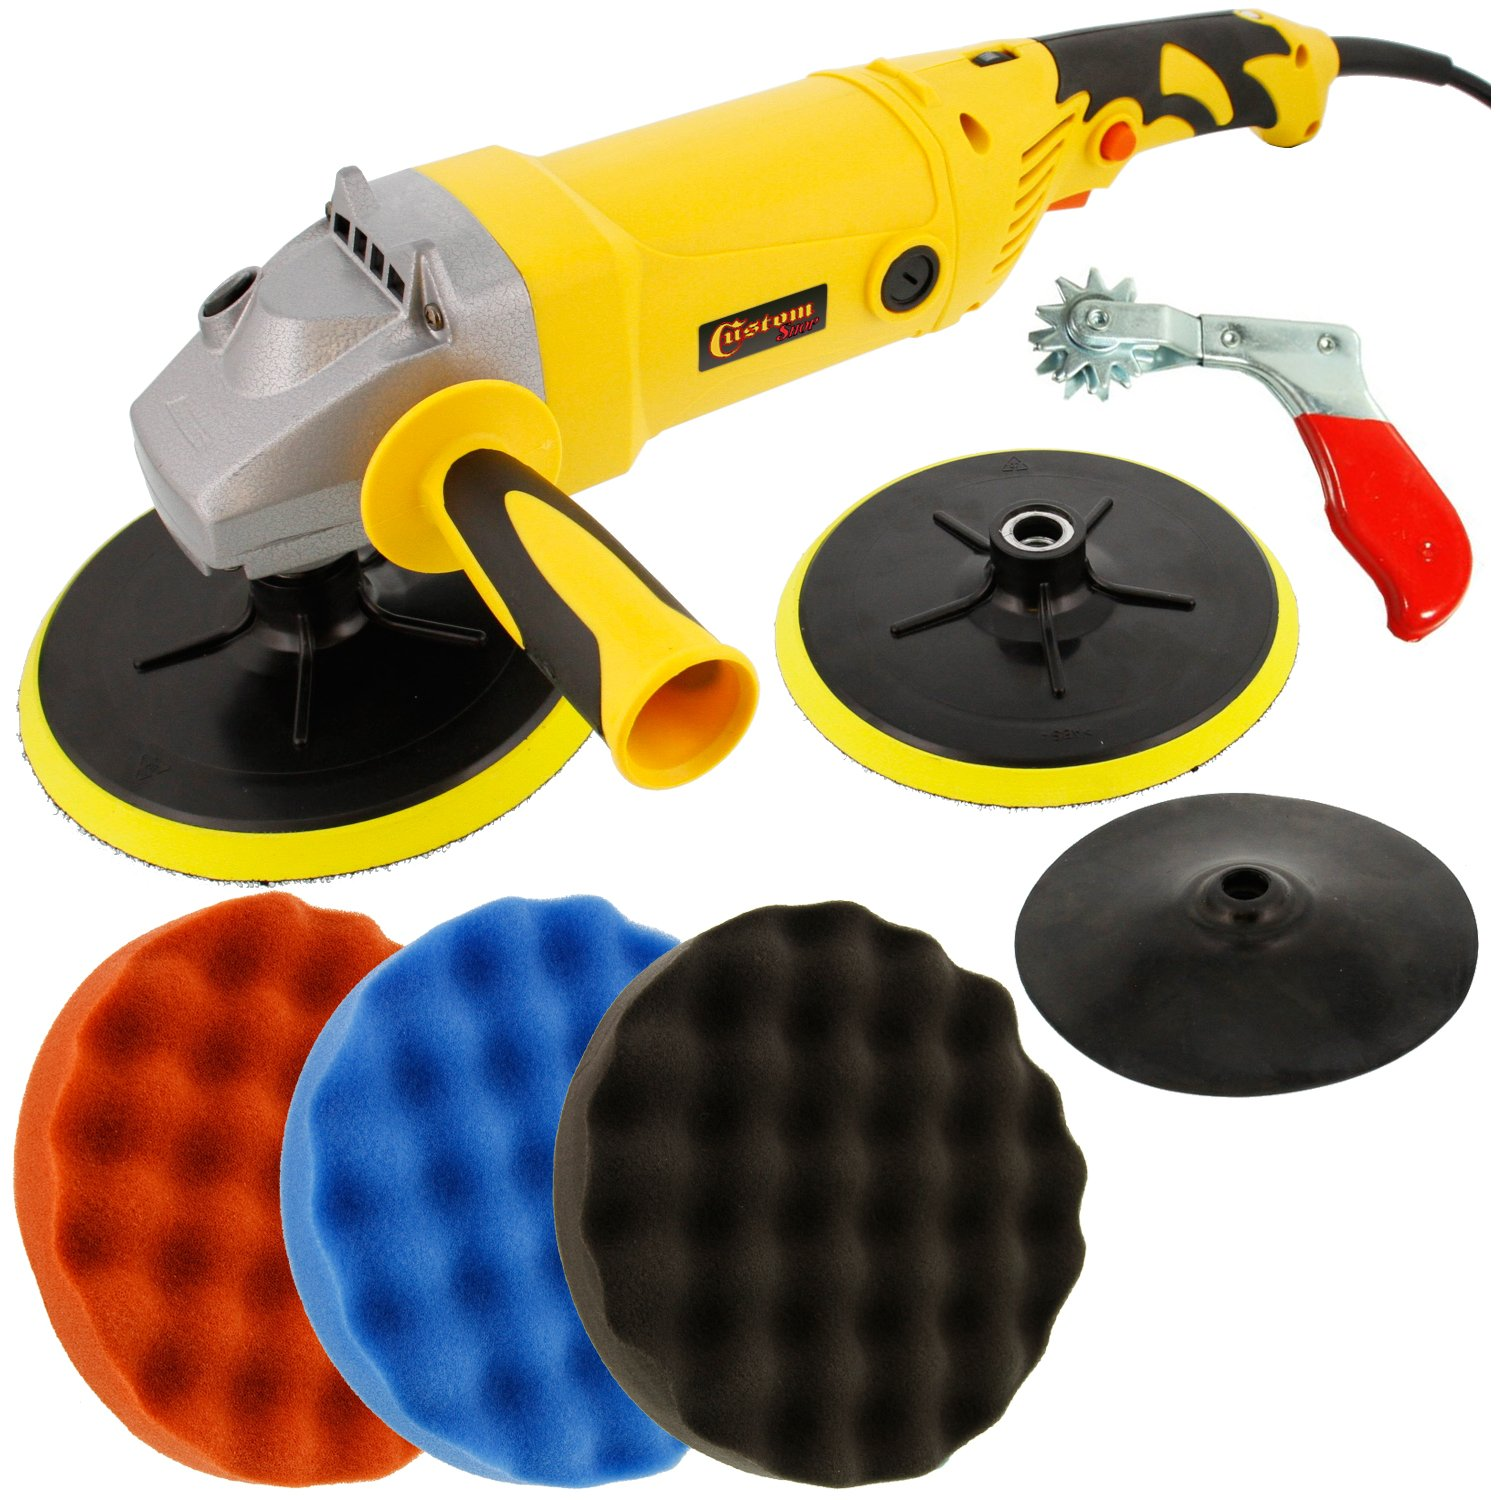 Custom Shop Heavy Duty Variable Speed Polisher with a Professional 3 Waffle Pad Buffing and Polishing Kit